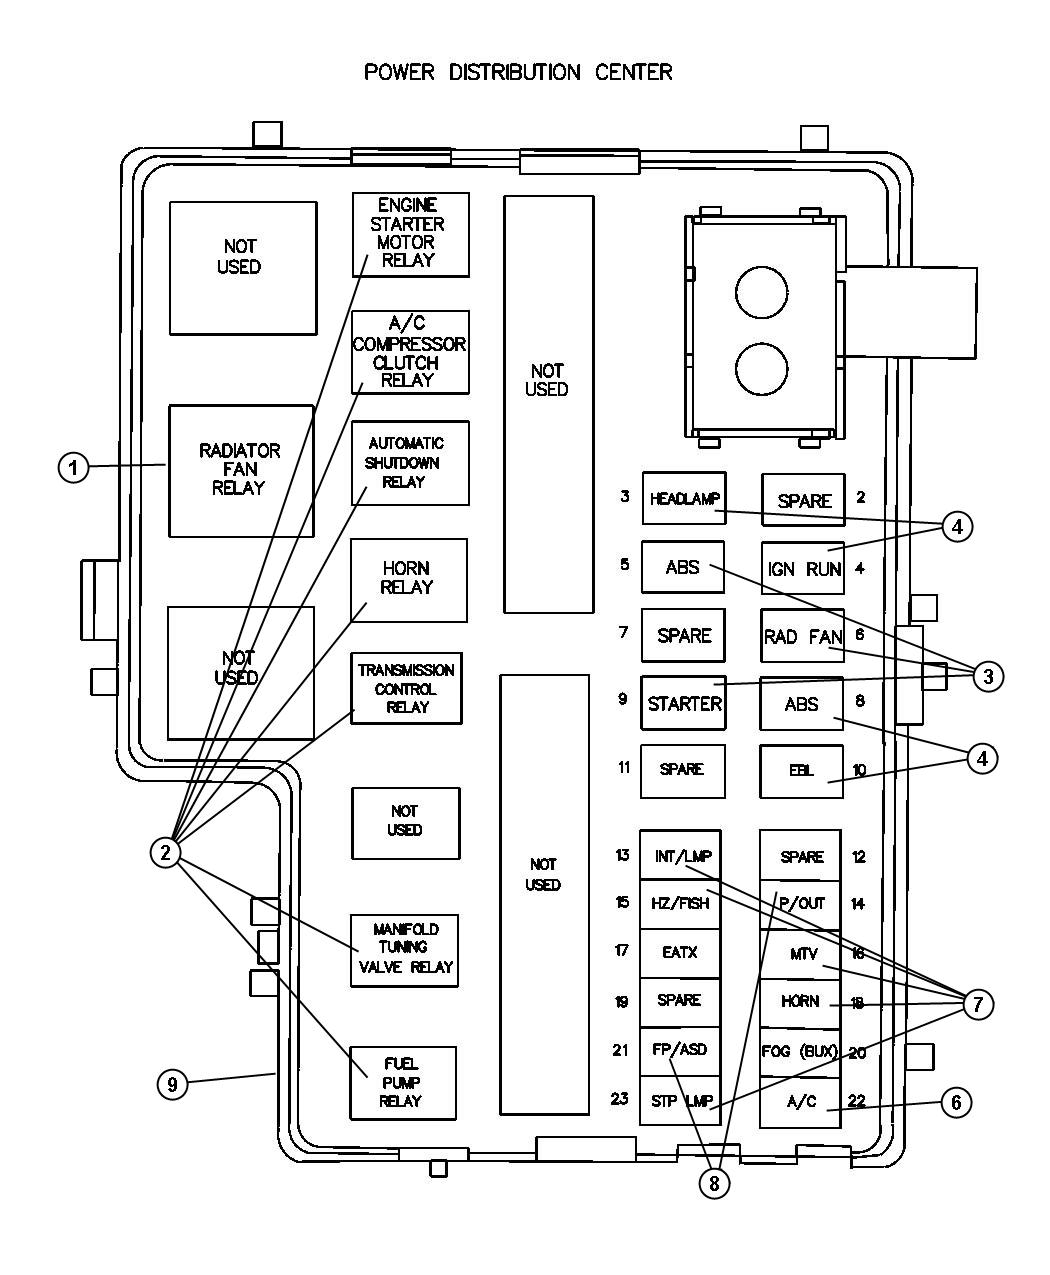 dodge asd relay wiring diagram 1992 trusted wiring diagrams u2022 rh sivamuni com